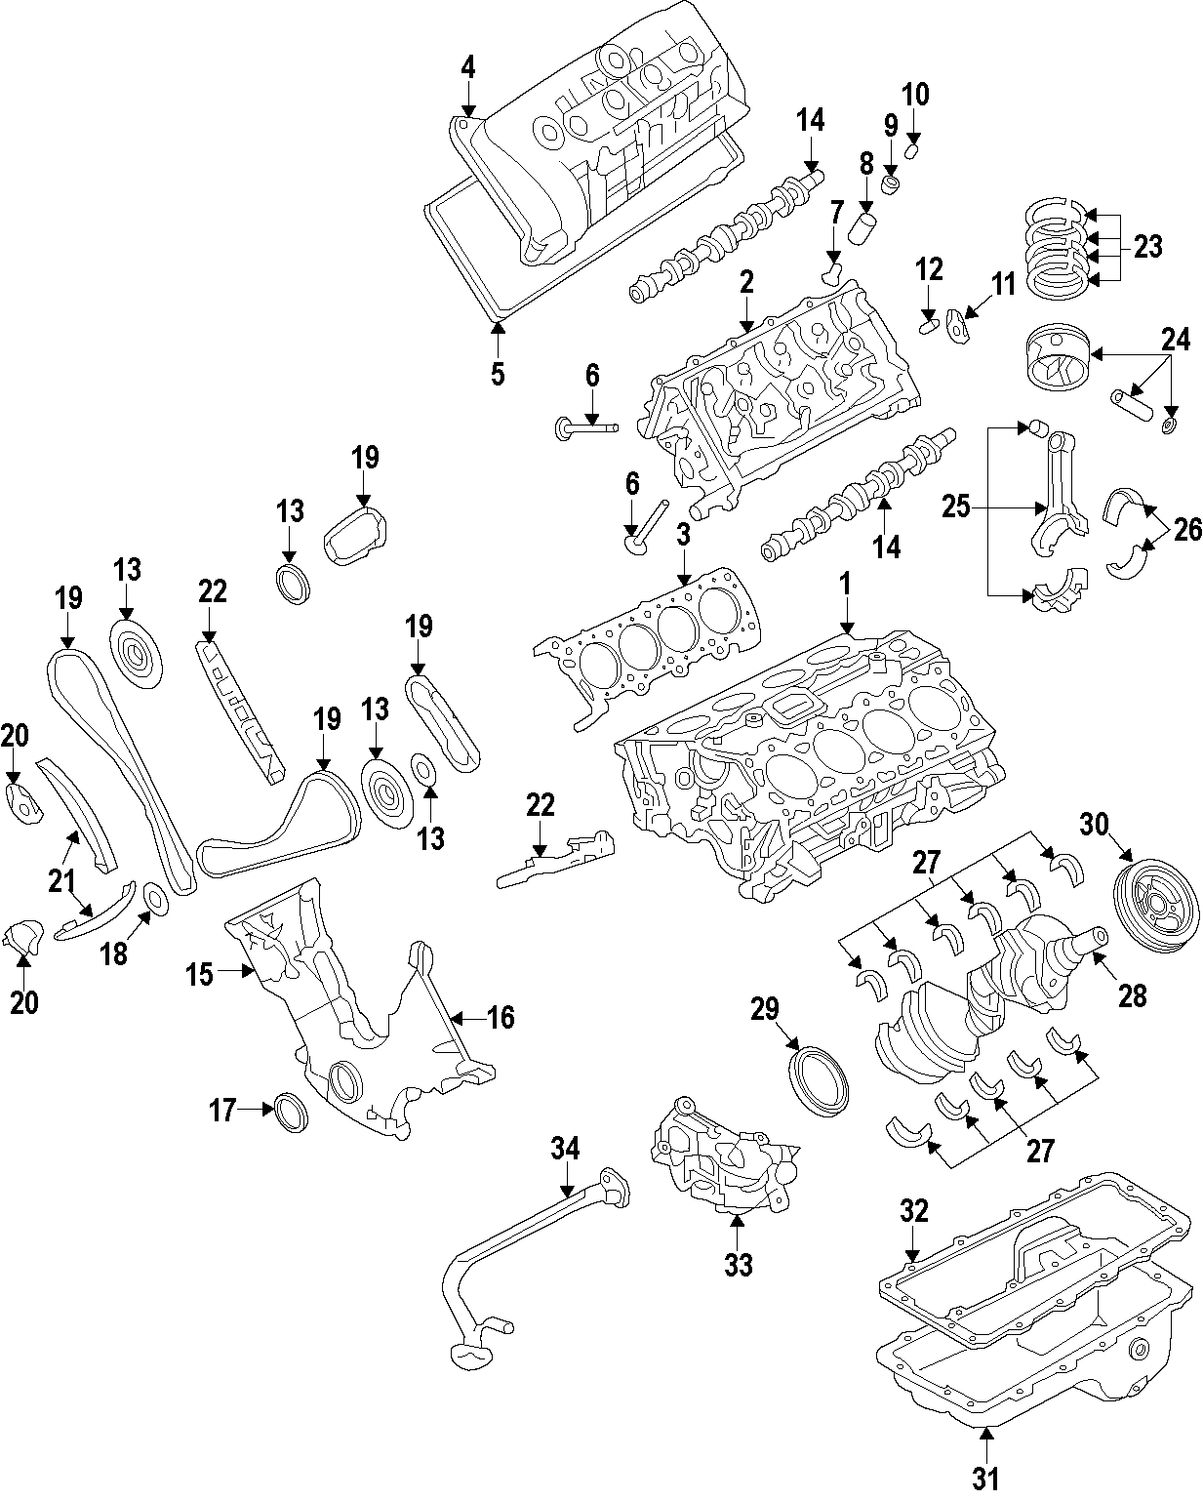 ford 302 engine wiring diagram satellite dish parts weed eater lawn tractor